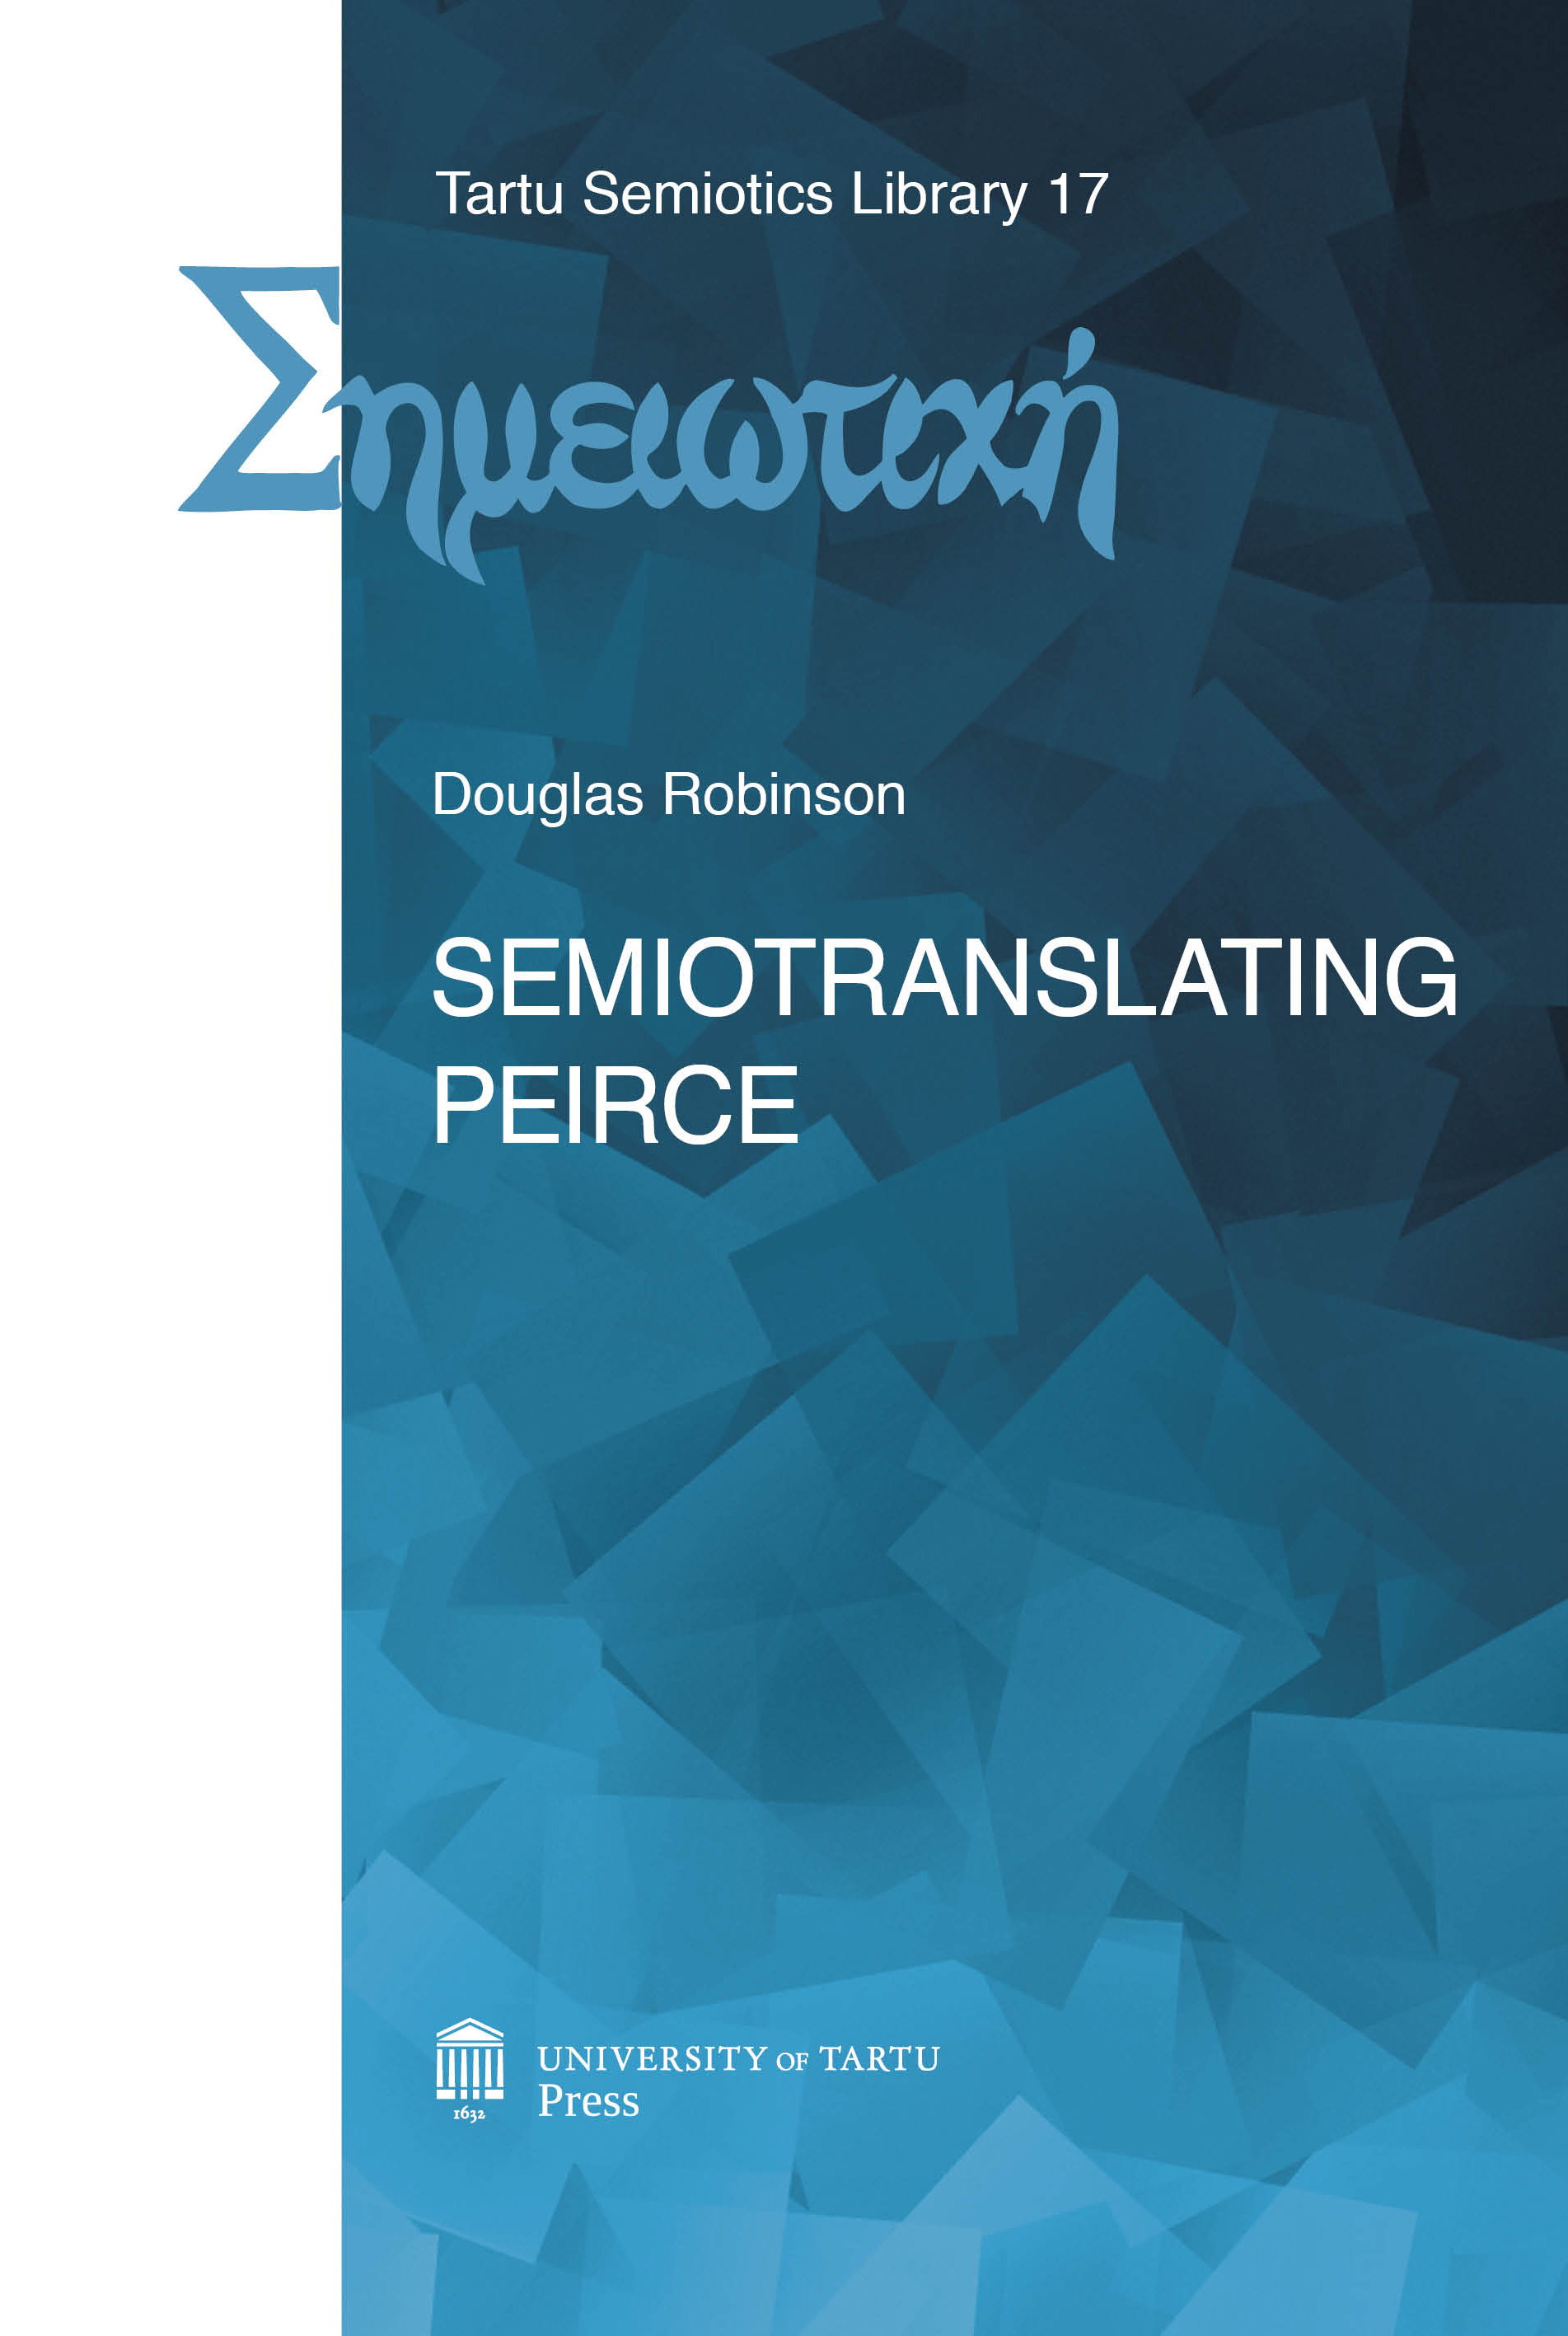 Chapter 2. - Test case 1: Semiotranslating Peirce into Finnish